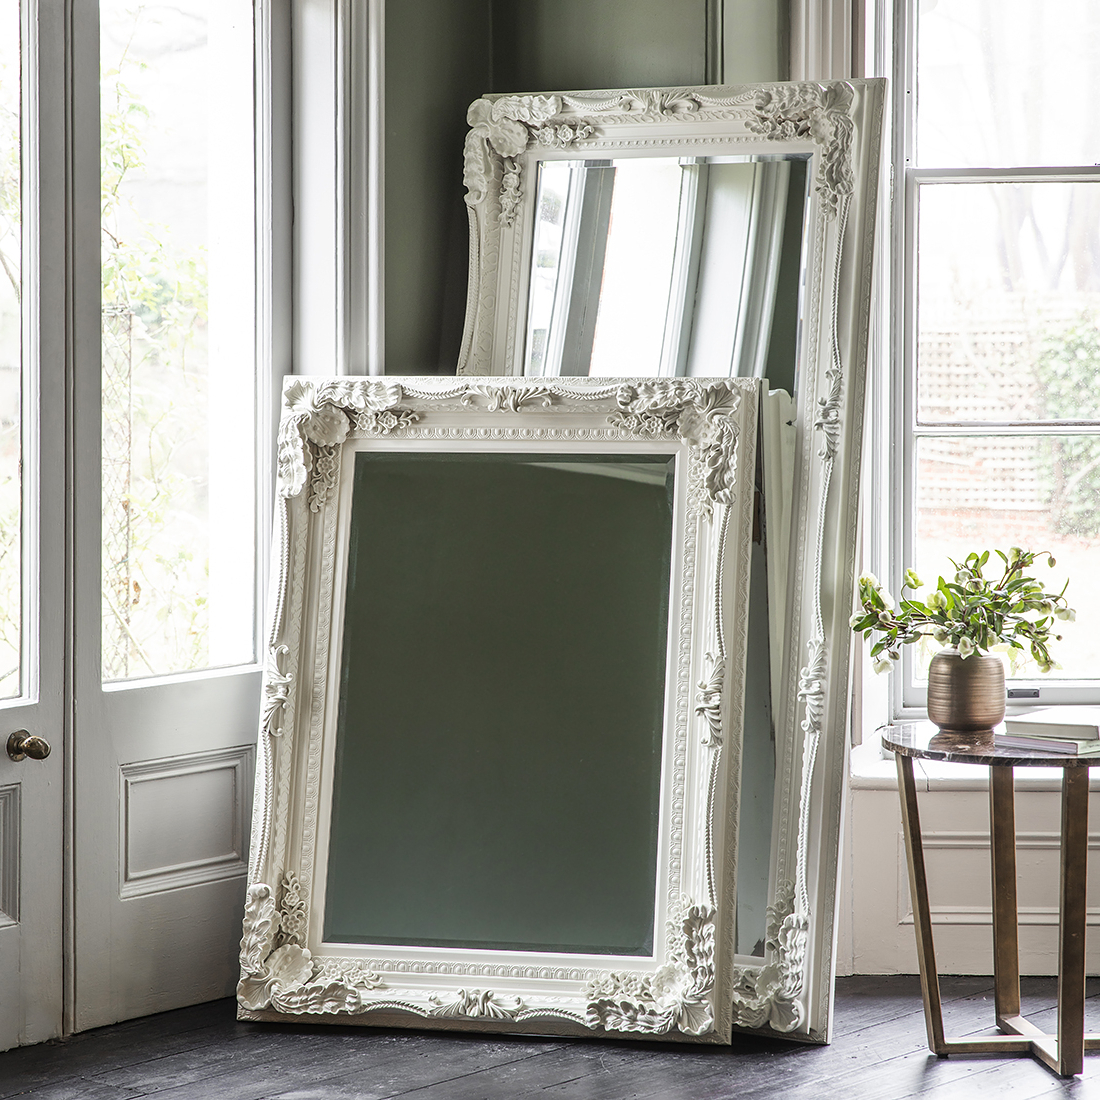 Recent Decorative Full Length Wall Mirrors With Regard To Decorative Cream Full Length Mirror (View 16 of 20)